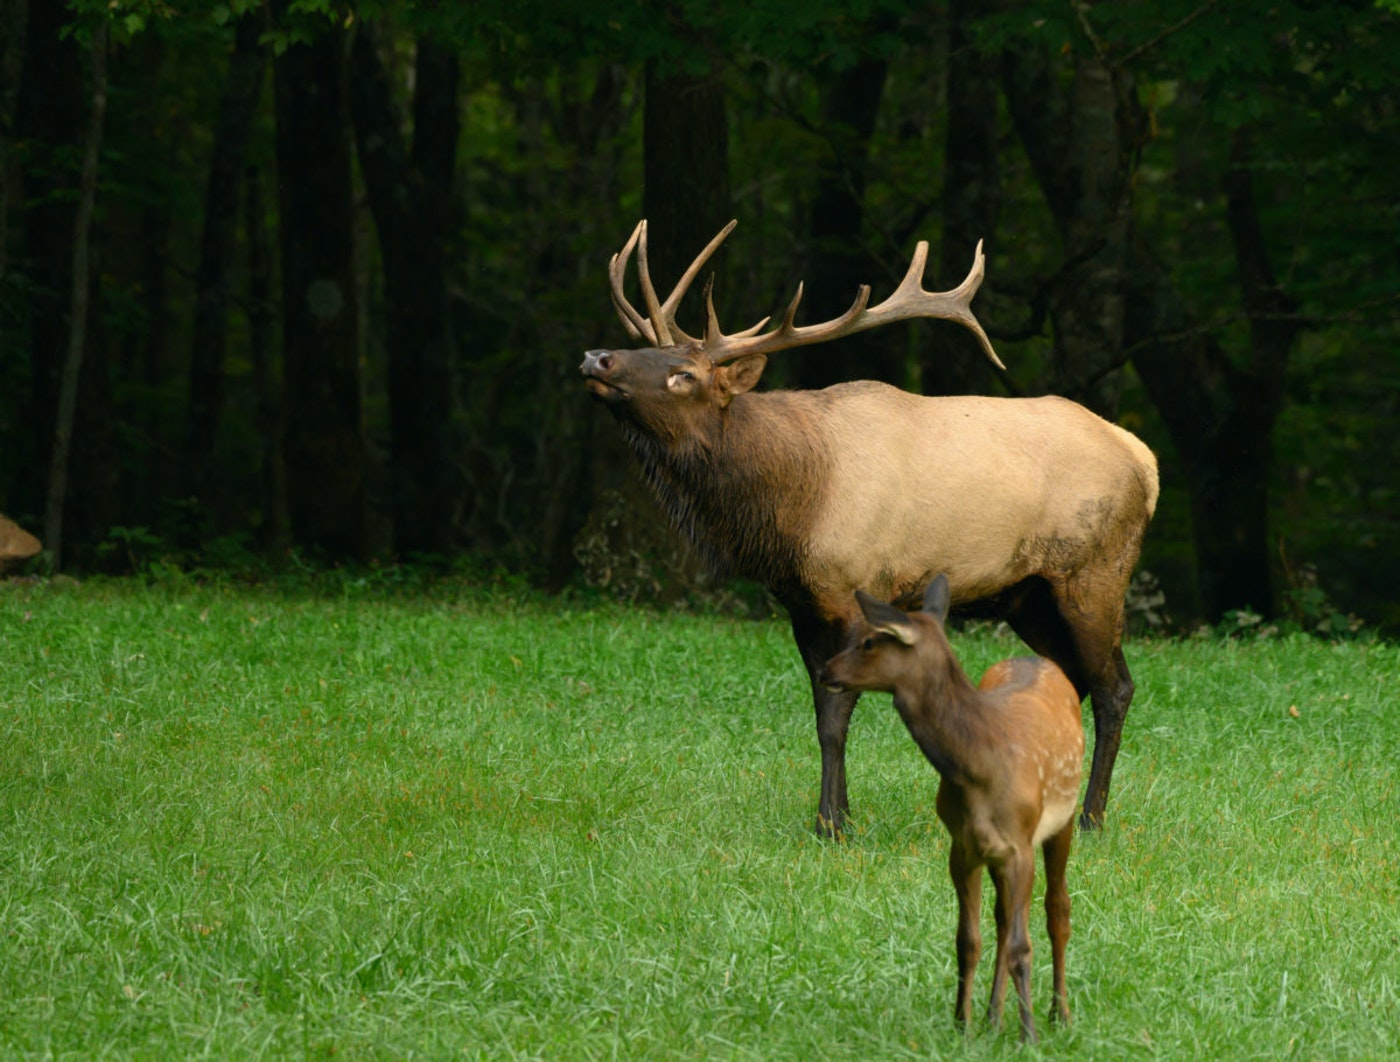 Elks are a sight to see in Michigan.